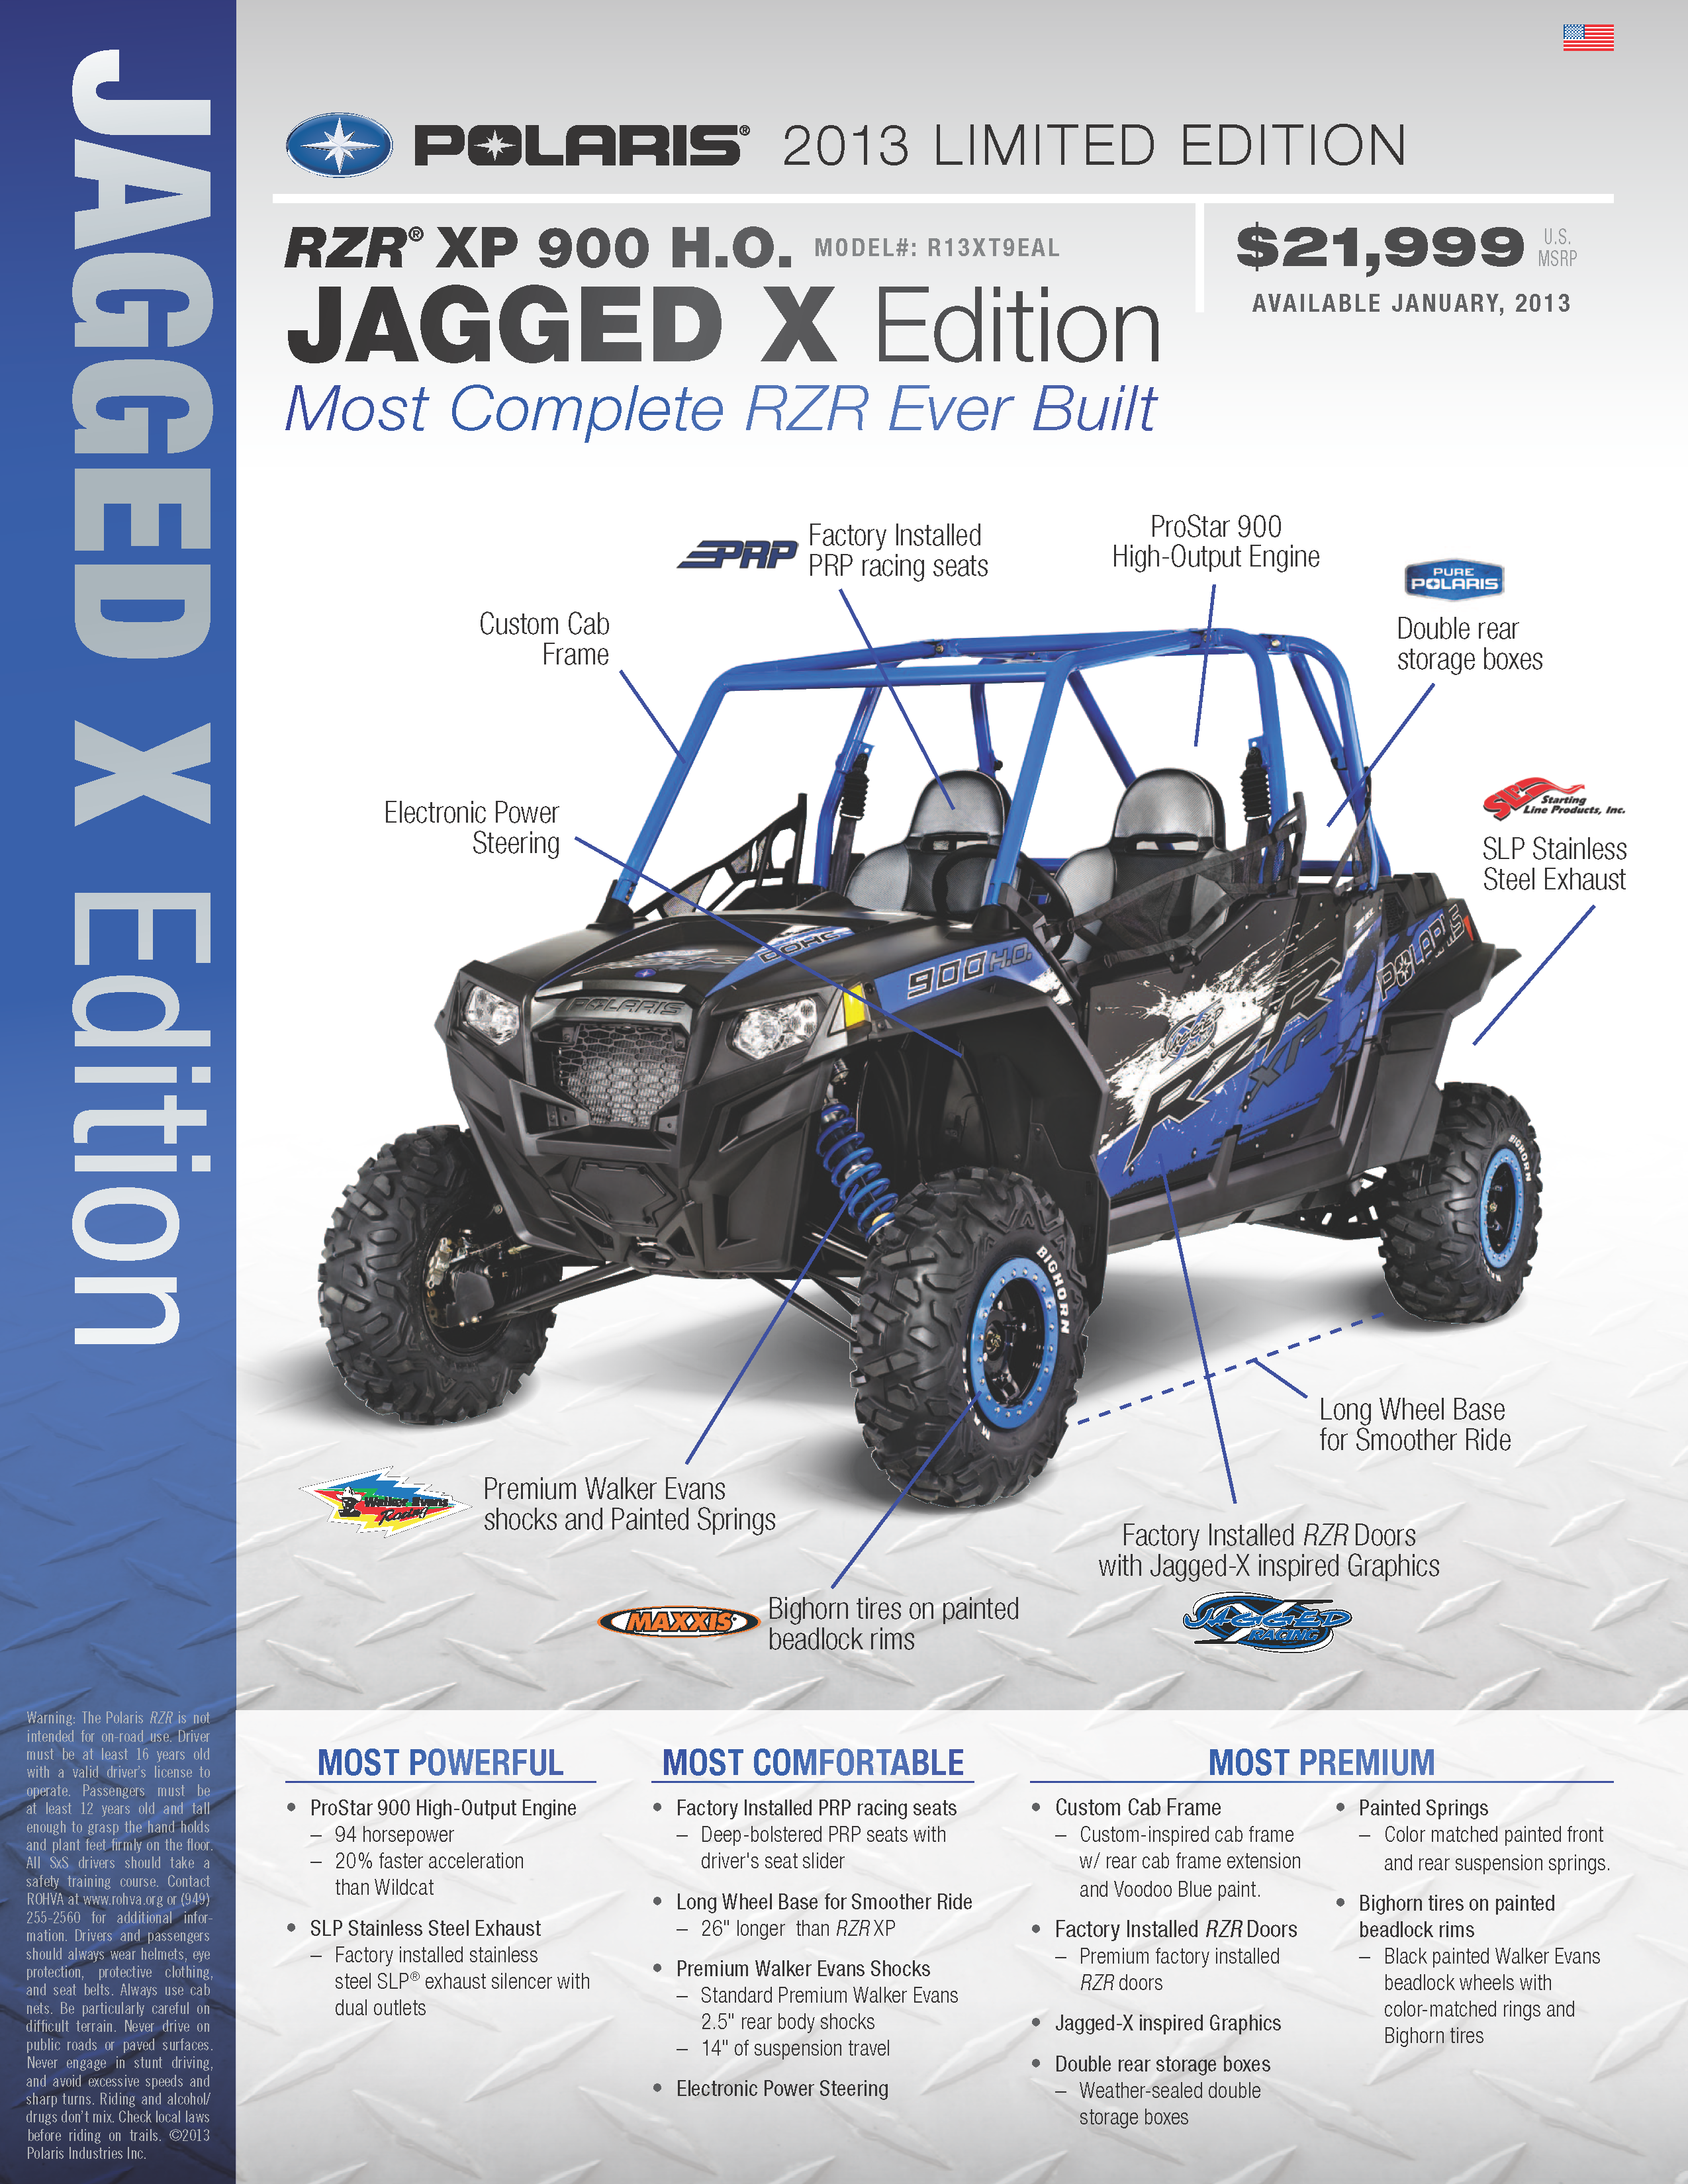 rzr xp 900 h o model r13xt9eal jagged x edition most complete rzr ever built [ 2550 x 3300 Pixel ]